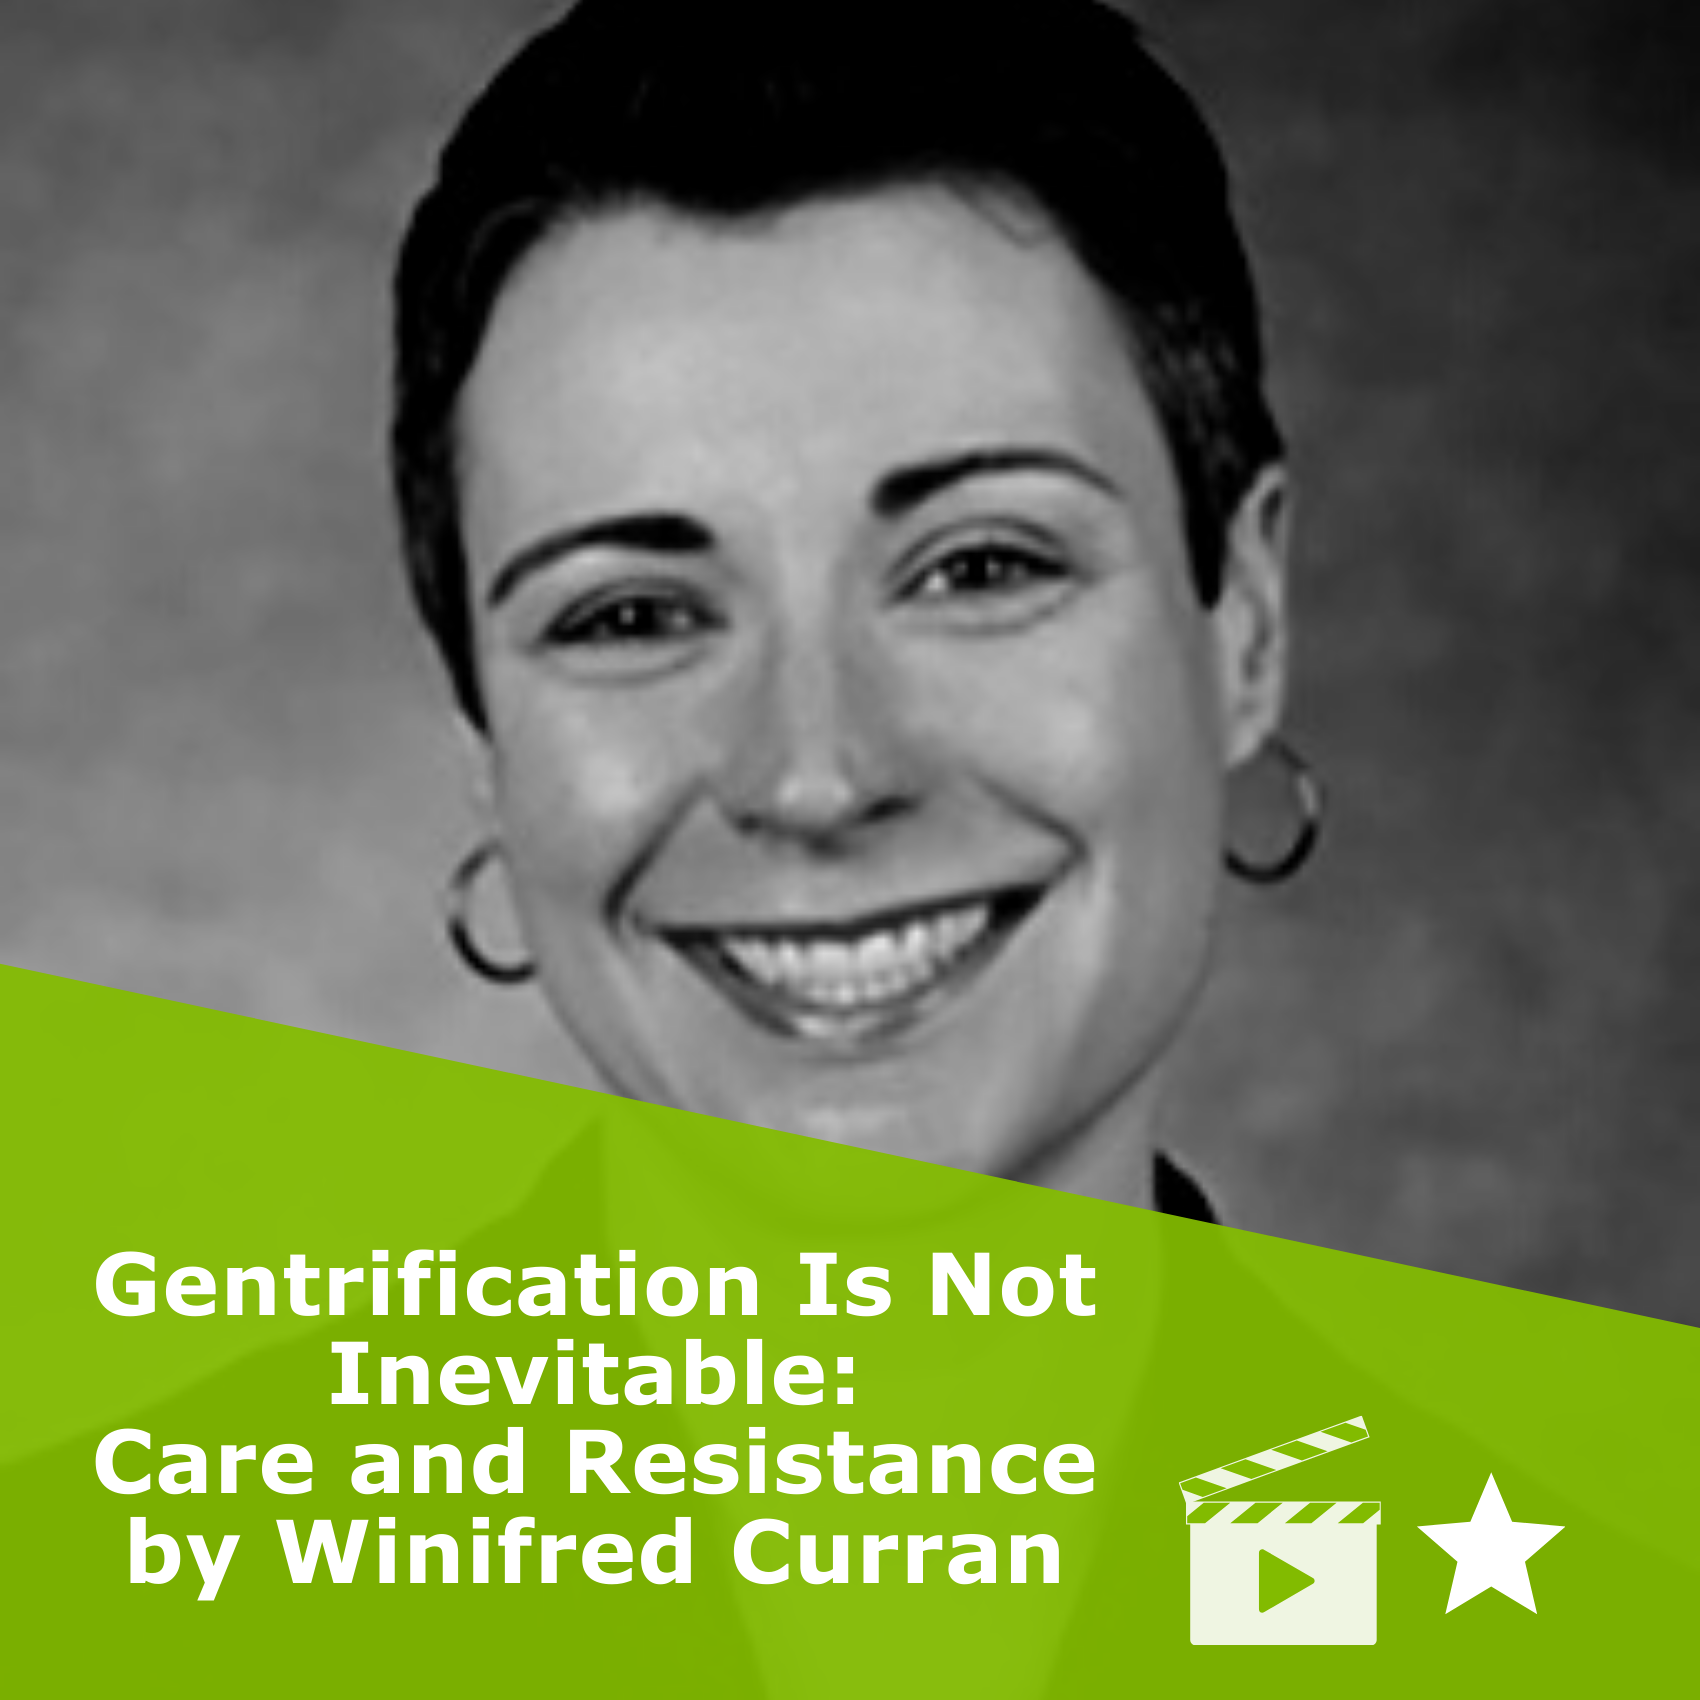 Picture of Winifred Curran in black and white. Title 'Gentrification Is Not Inevitable: Care and Resistance'. It is a video rated 1 star